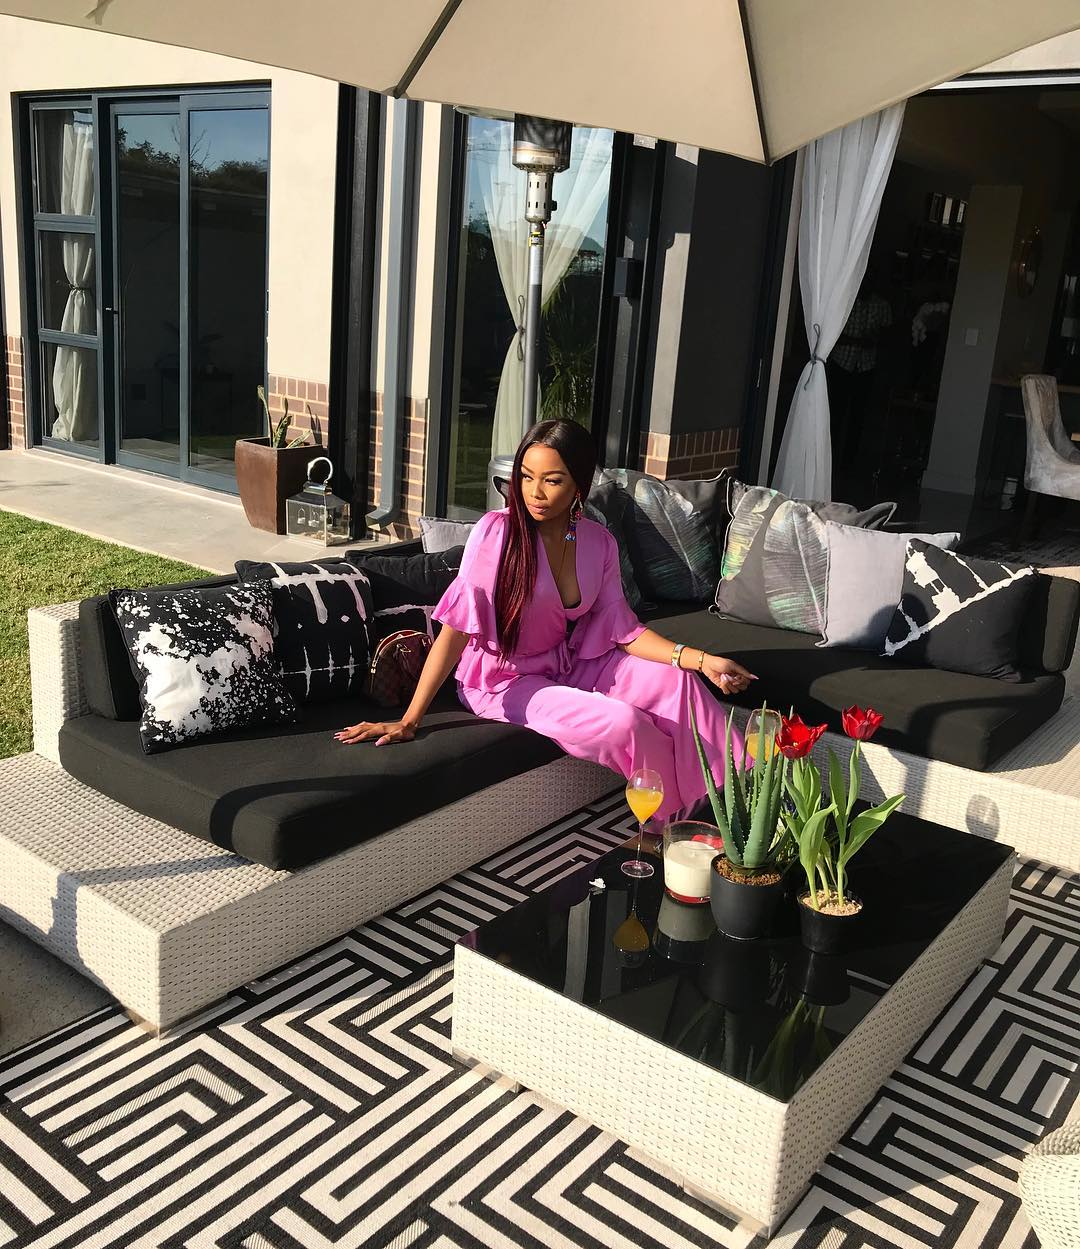 bonang-matheba-home-house-tour-south-africa-celebrity-top-billing-style-rave